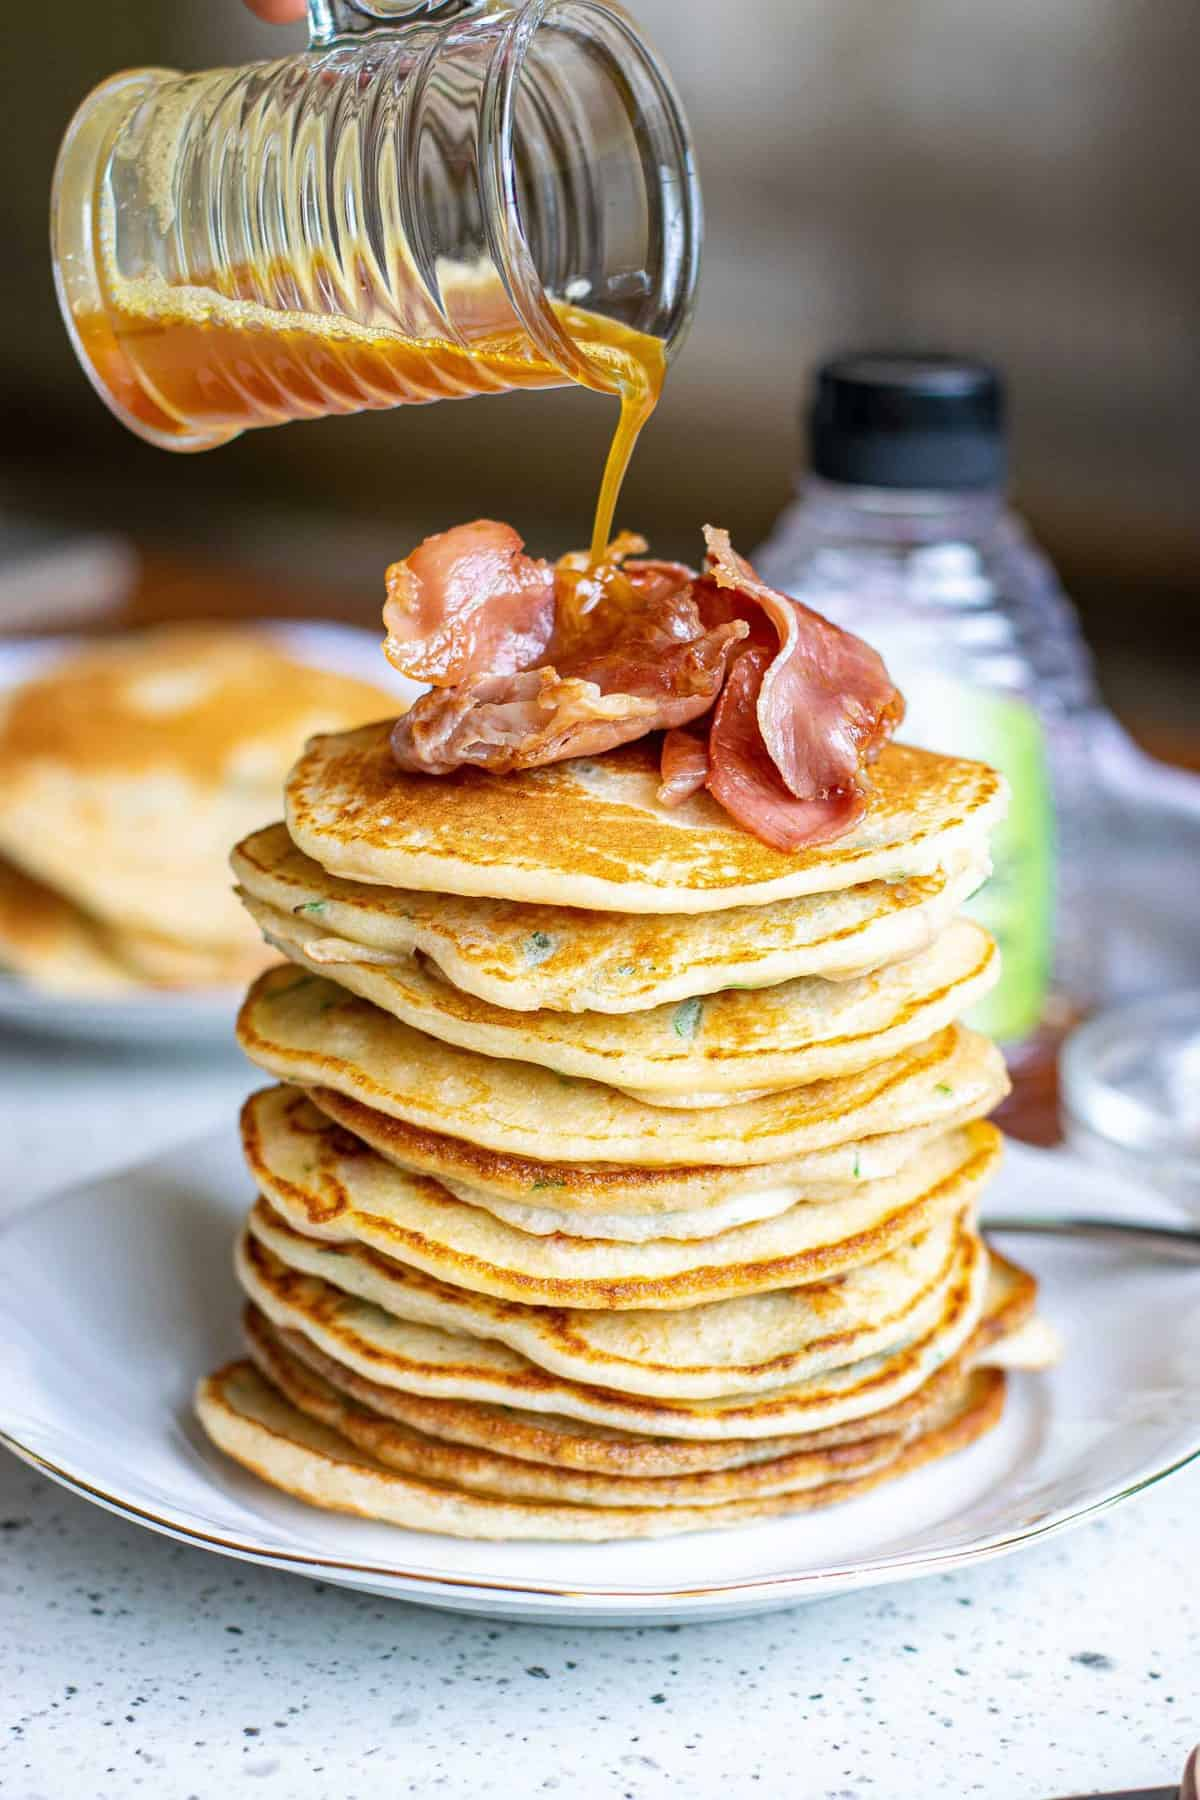 Brown butter being poured on a tall stack of pancakes.